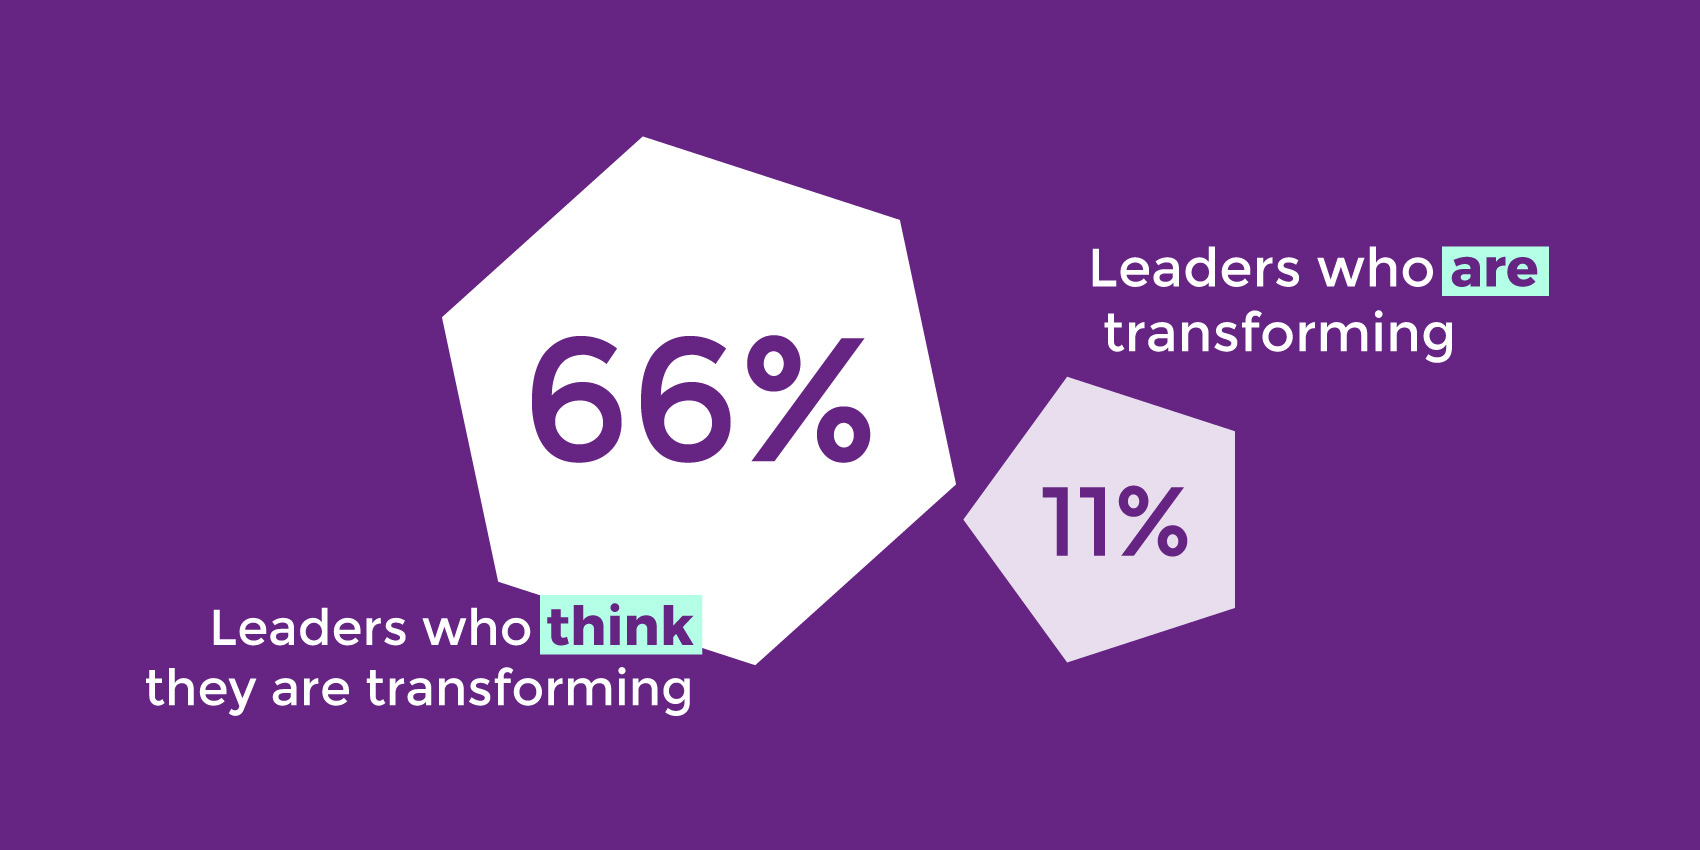 percentages of leaders who are implementing digital transformation vs digital optimization